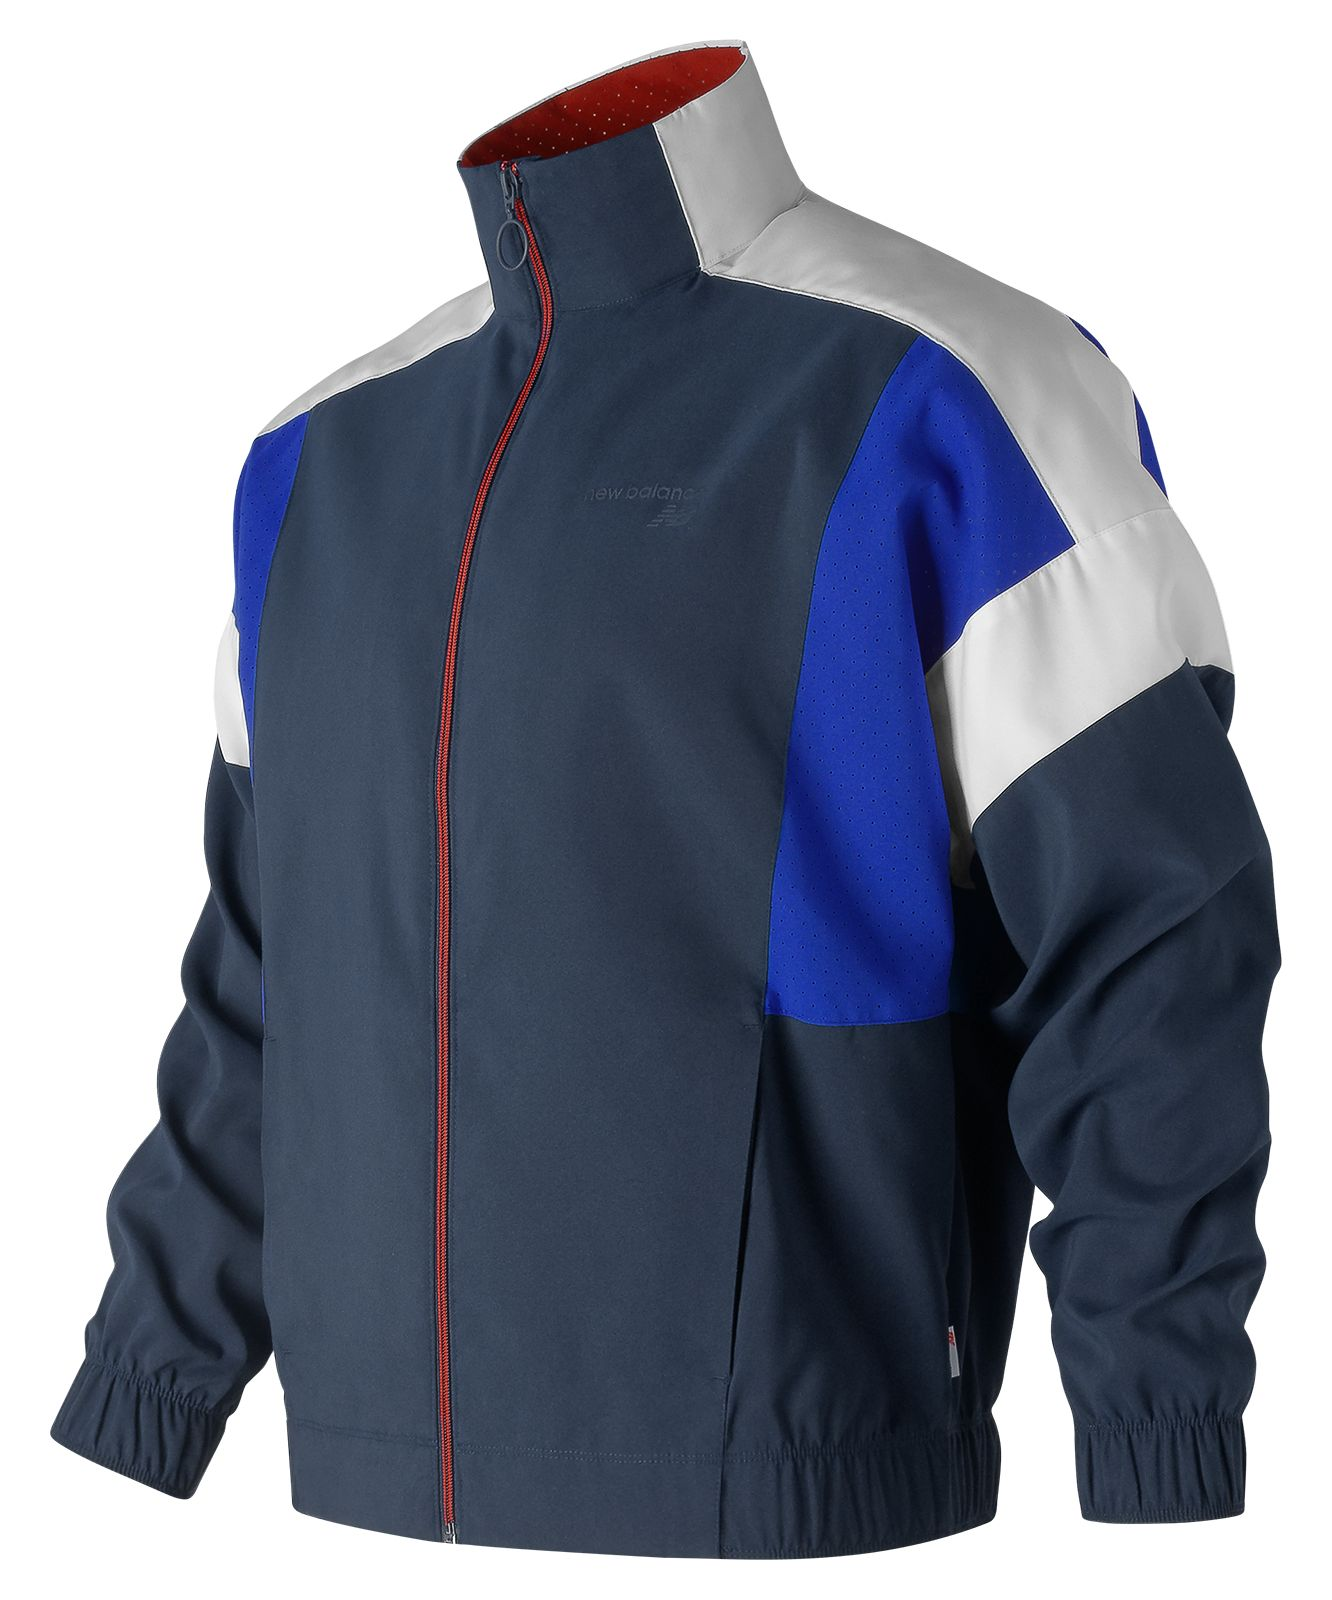 Men's NB Athletics Select Jacket